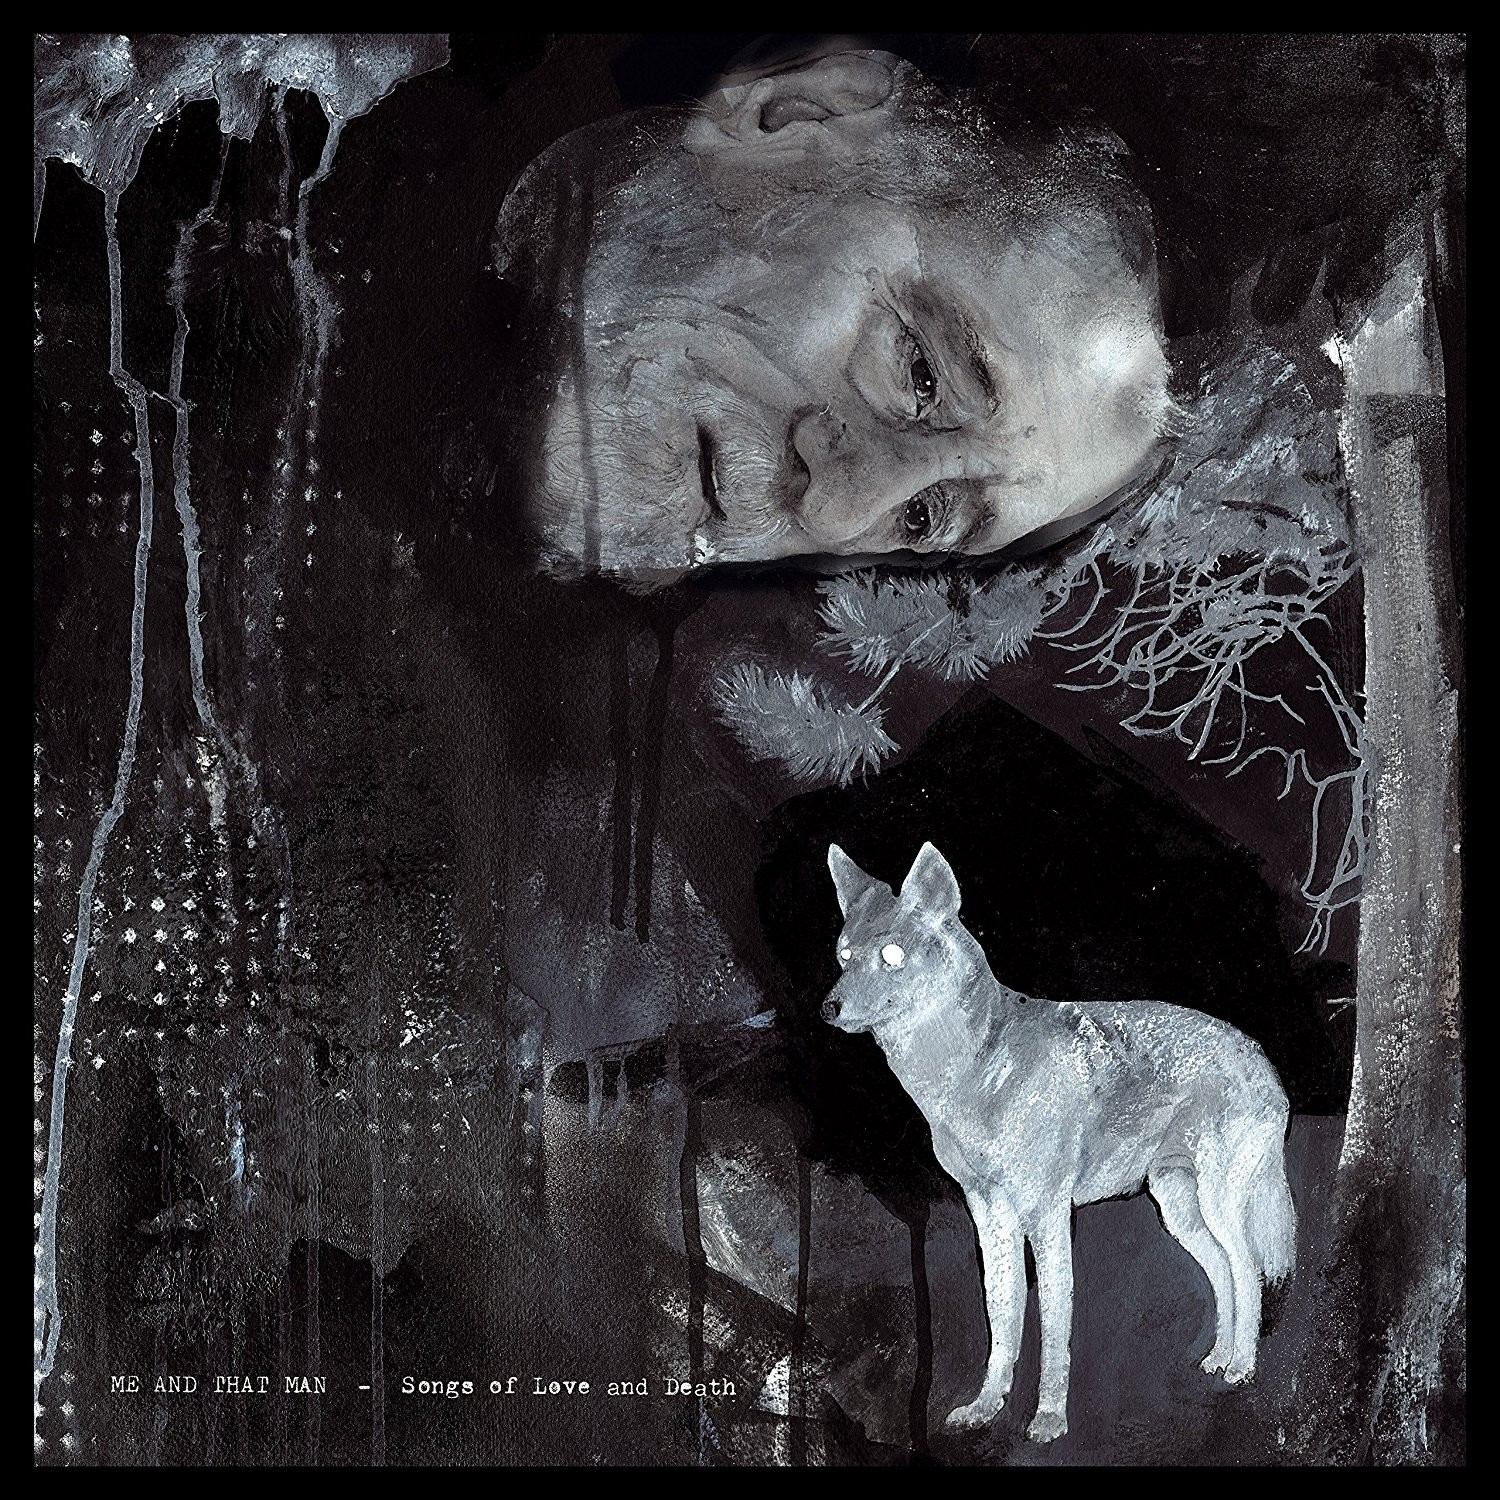 Me and That Man - Songs of Love and Death (Deluxe Edition) - CD